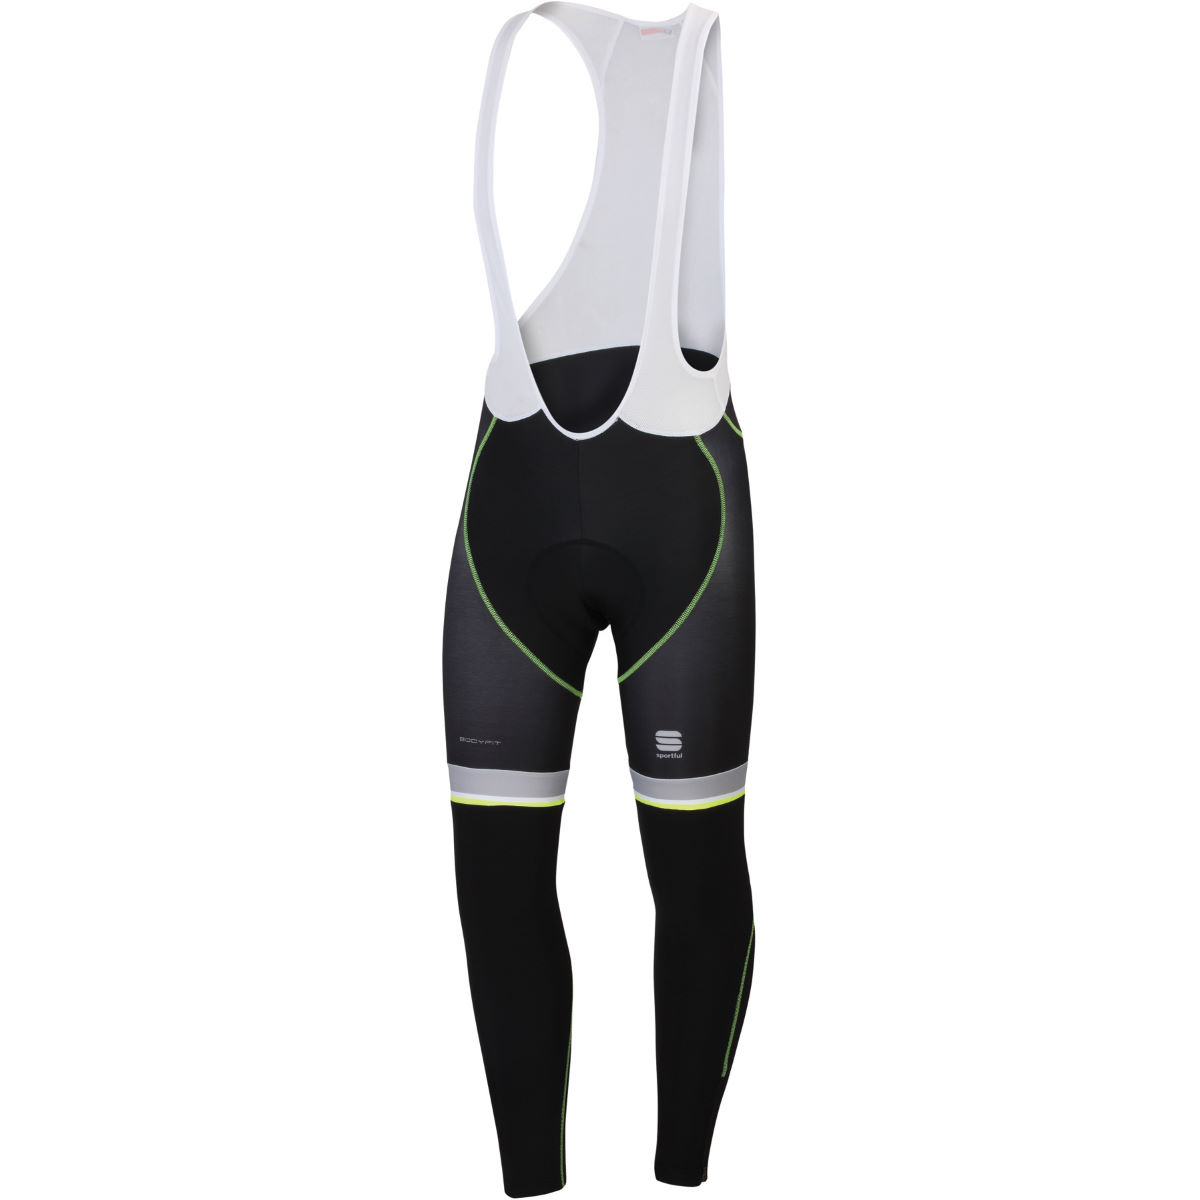 Sportful BodyFit Pro Thermal Bib Tights AW15